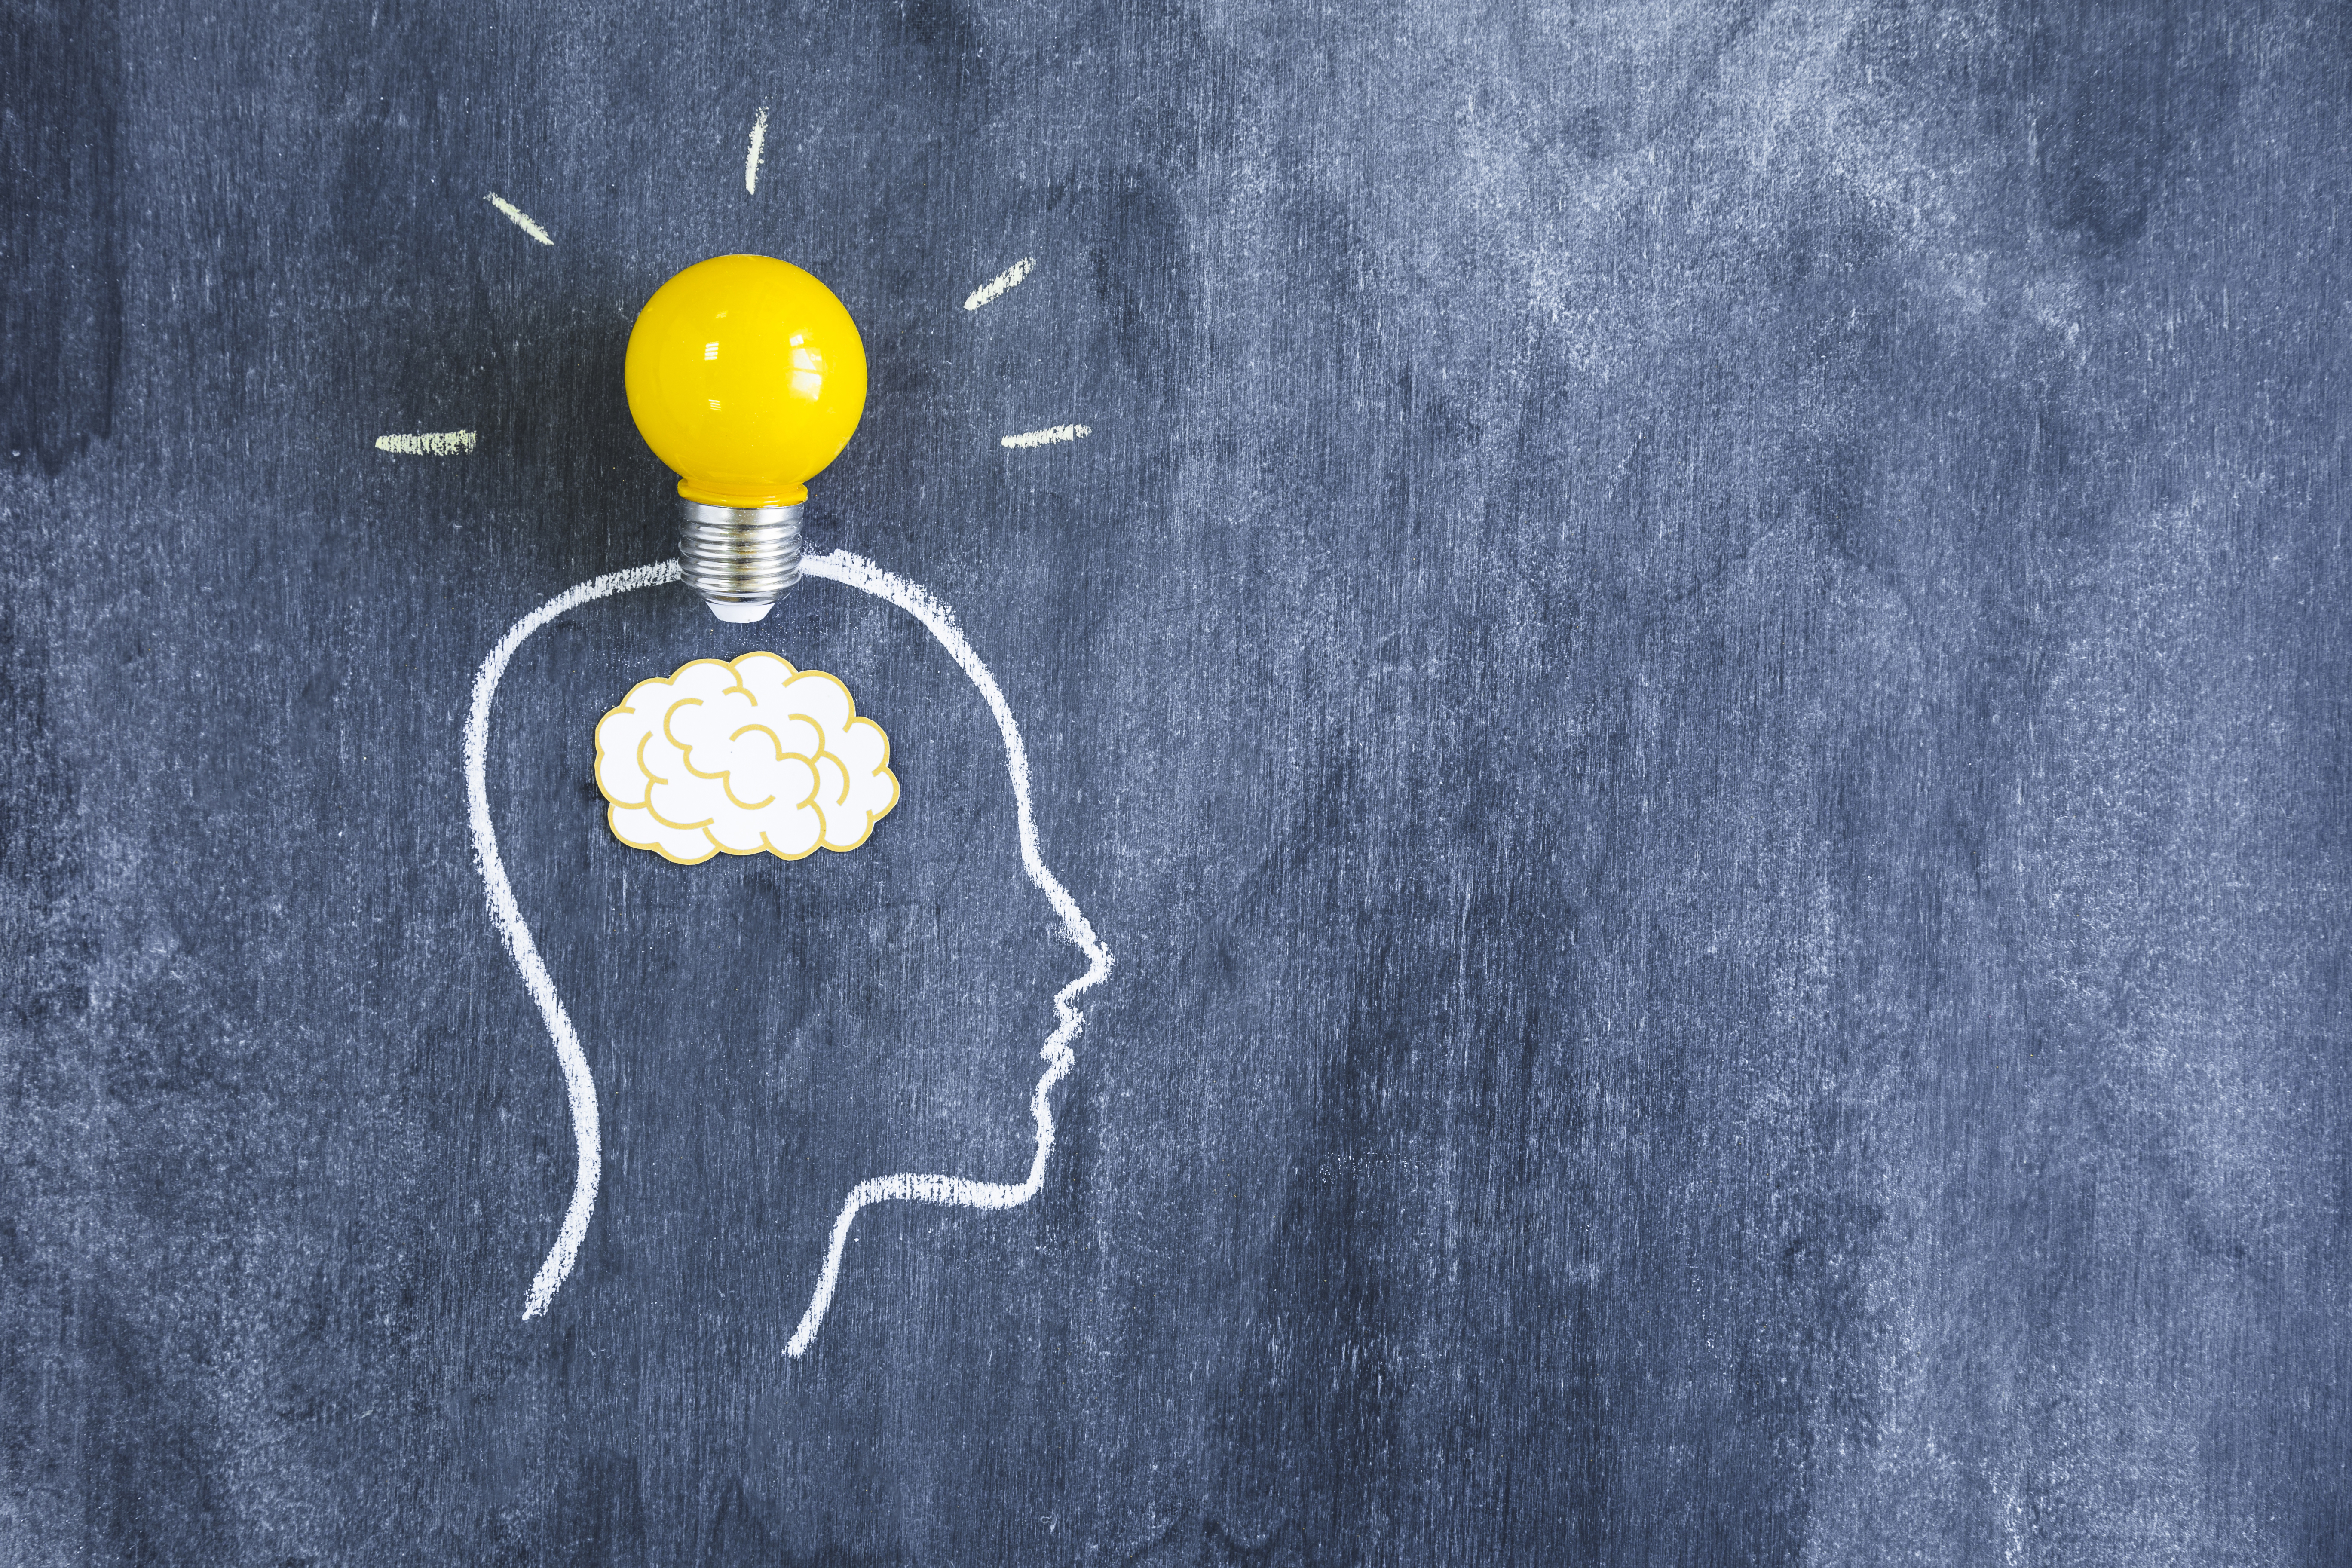 Yellow Light Bulb Over The Paper Cutout Brain On The Outline Face Made With Chalk Over The Blackboard